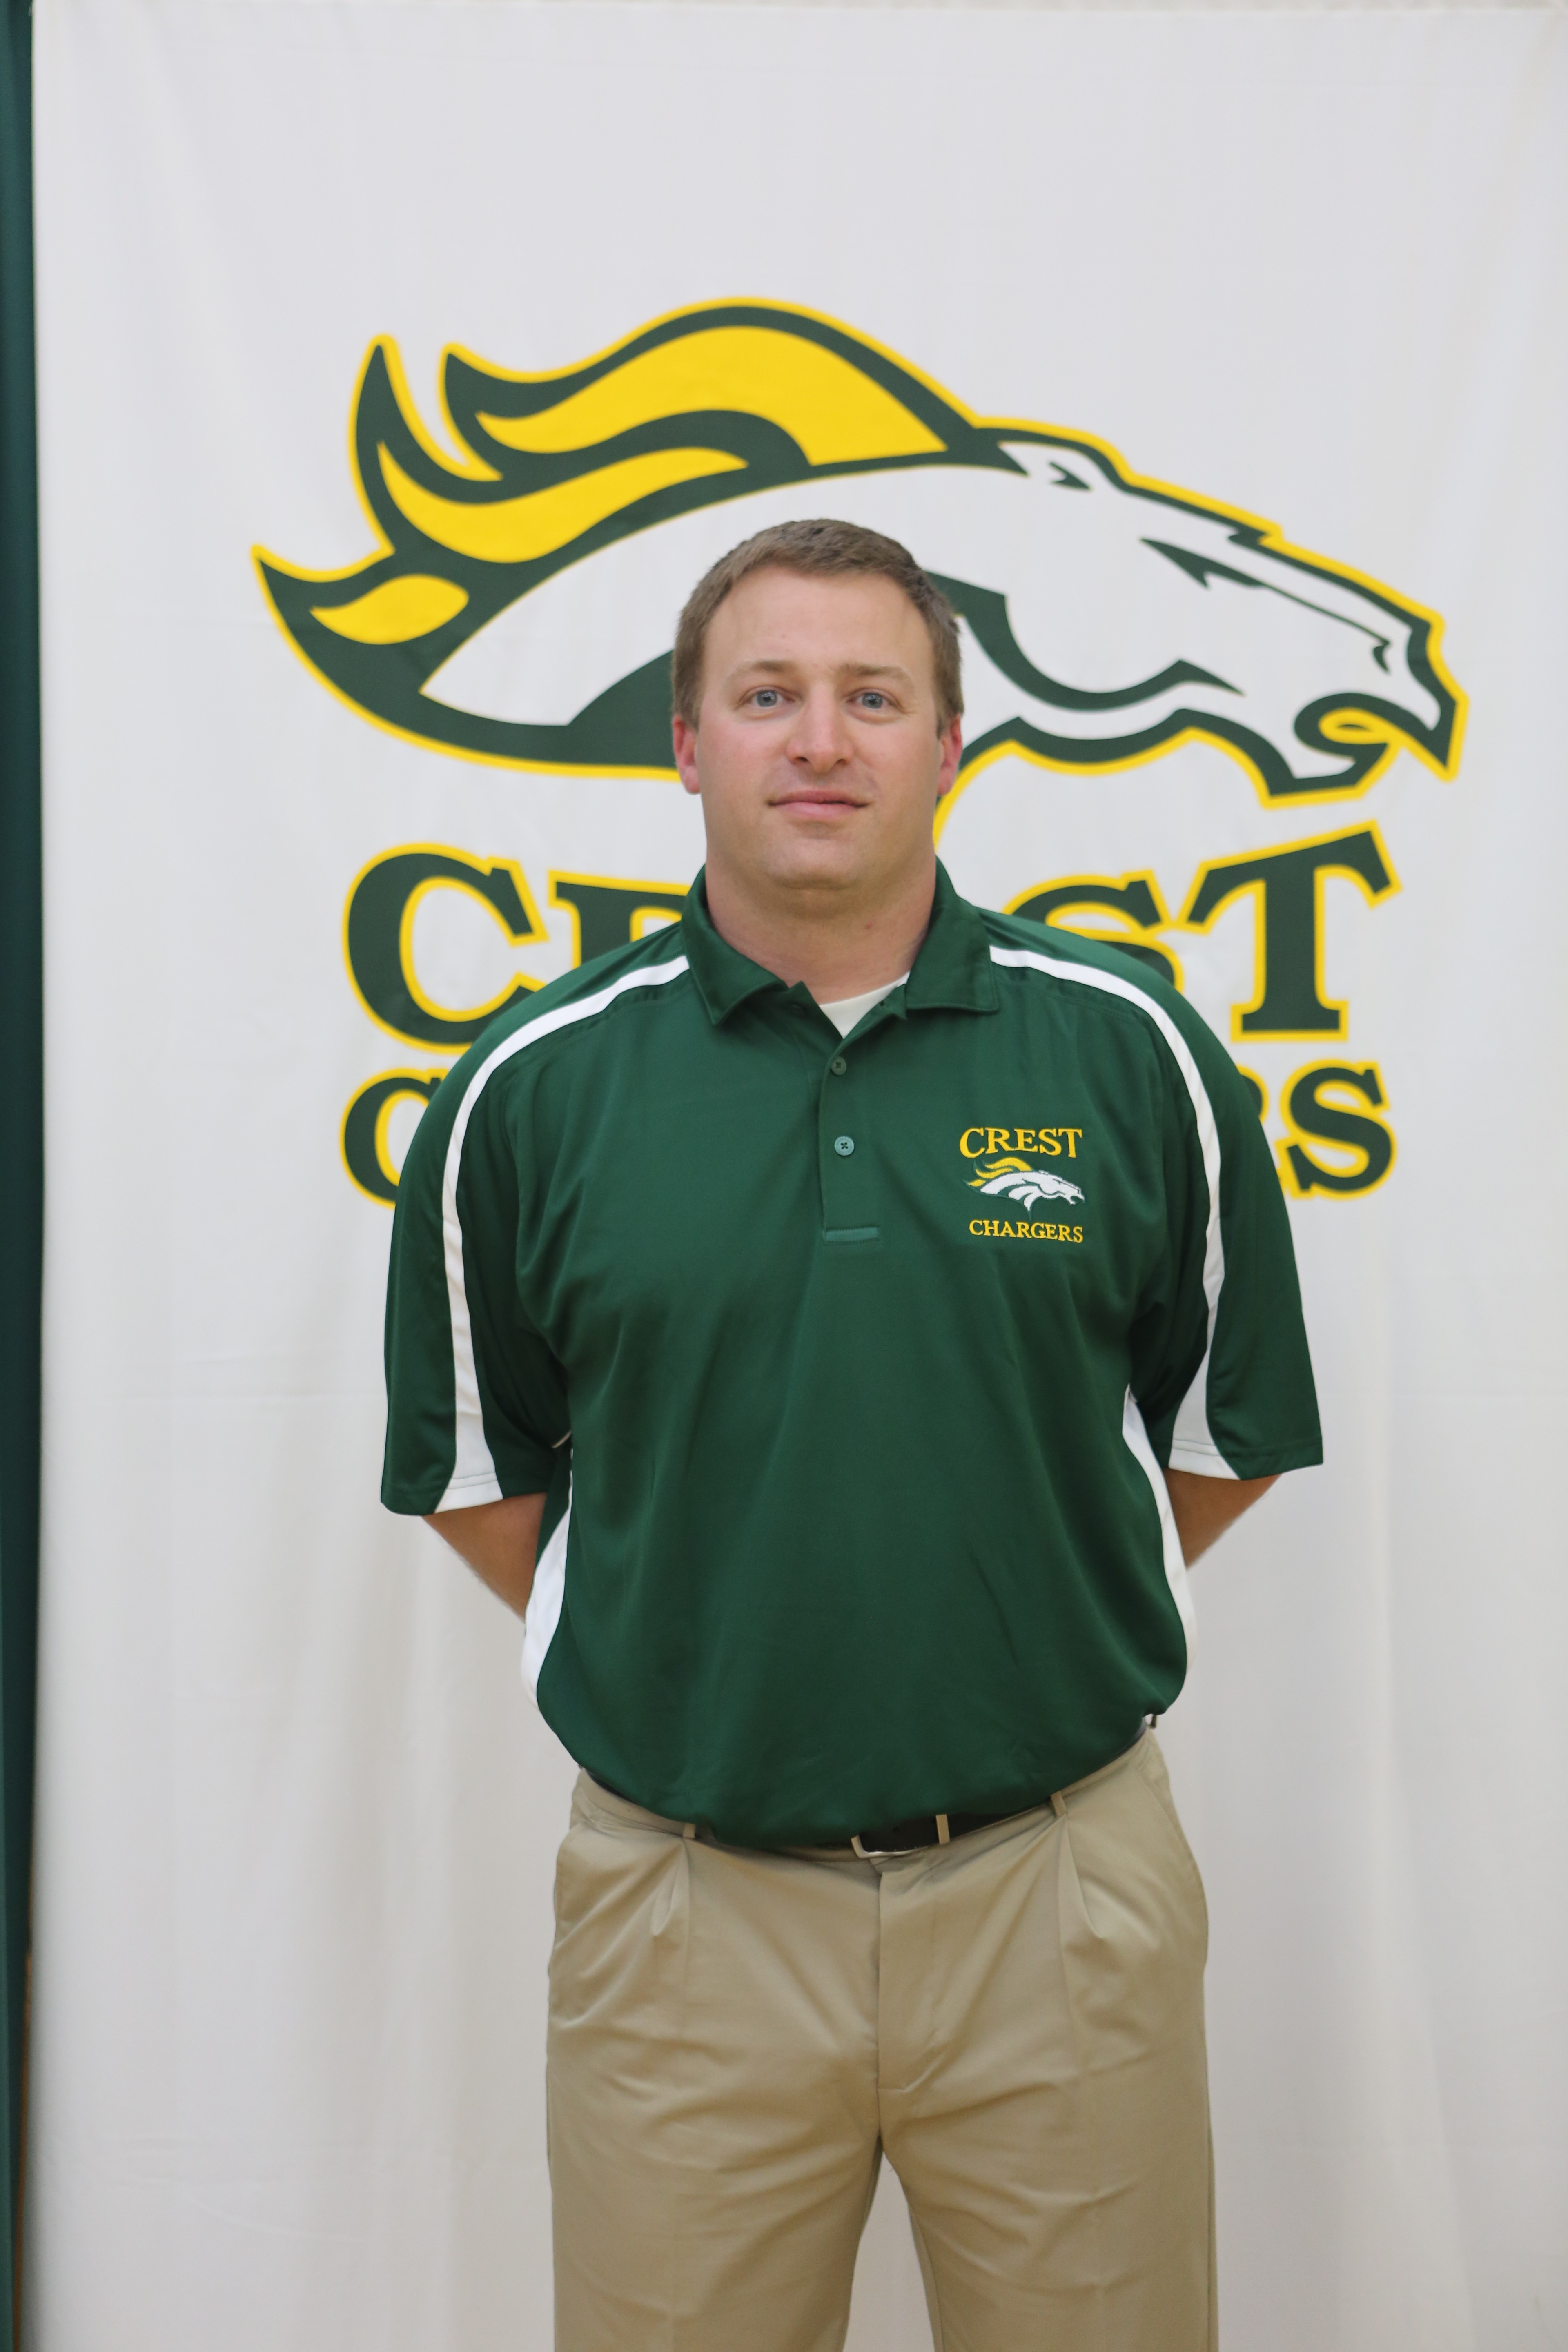 New Coach Will Clark takes over as head coach of the 2015 Crest Chargers